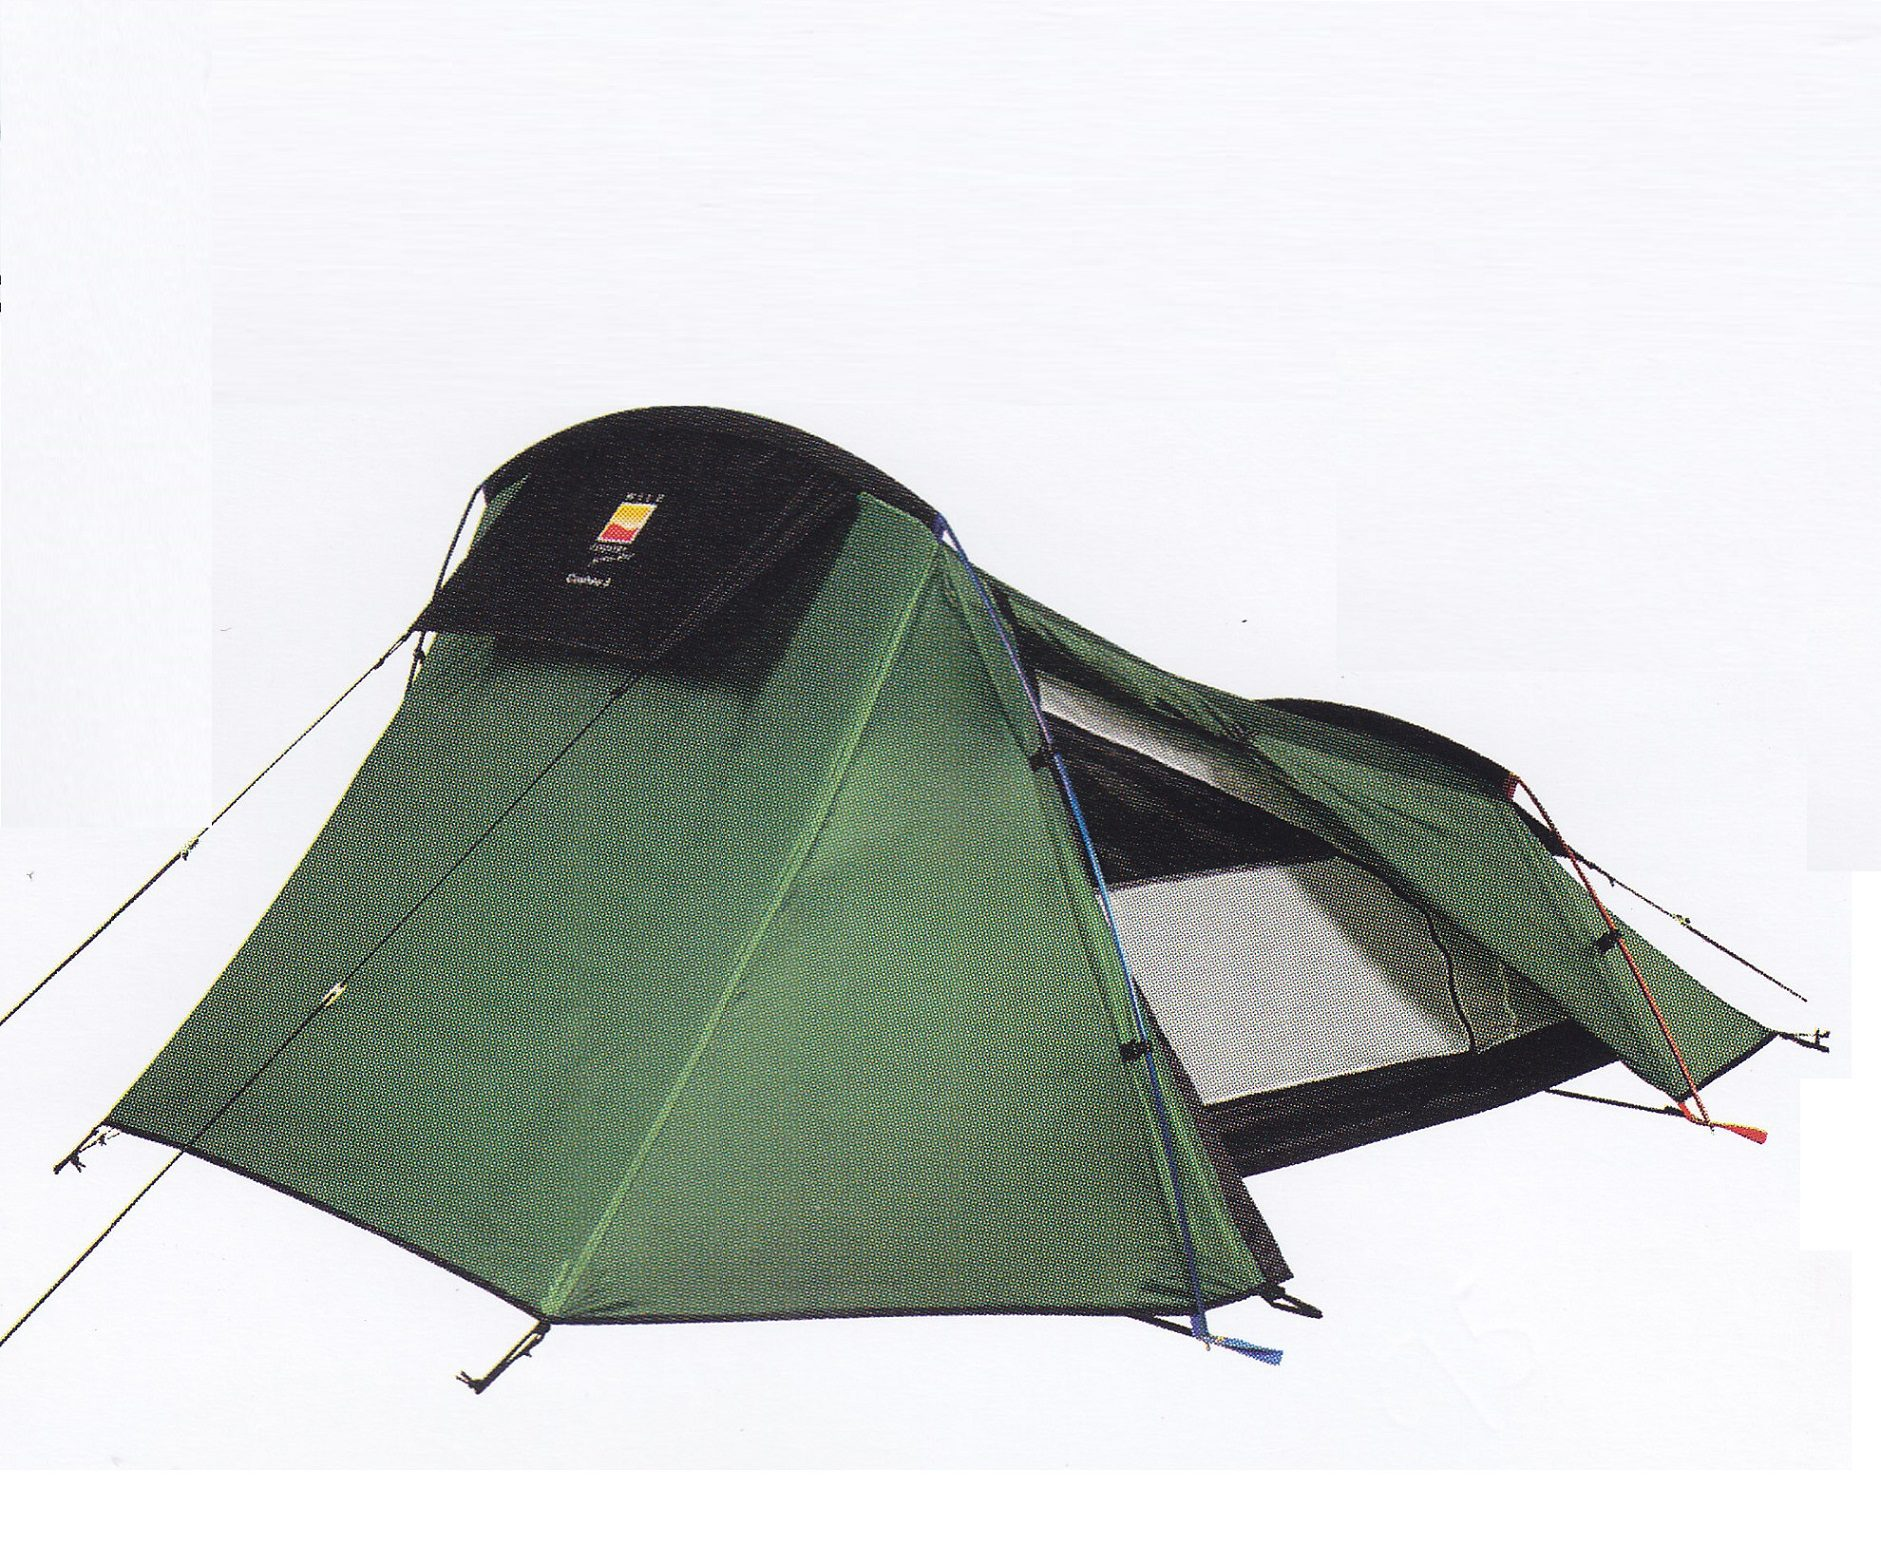 Wild Country Coshee 3 Tent 2015 - 44CO3